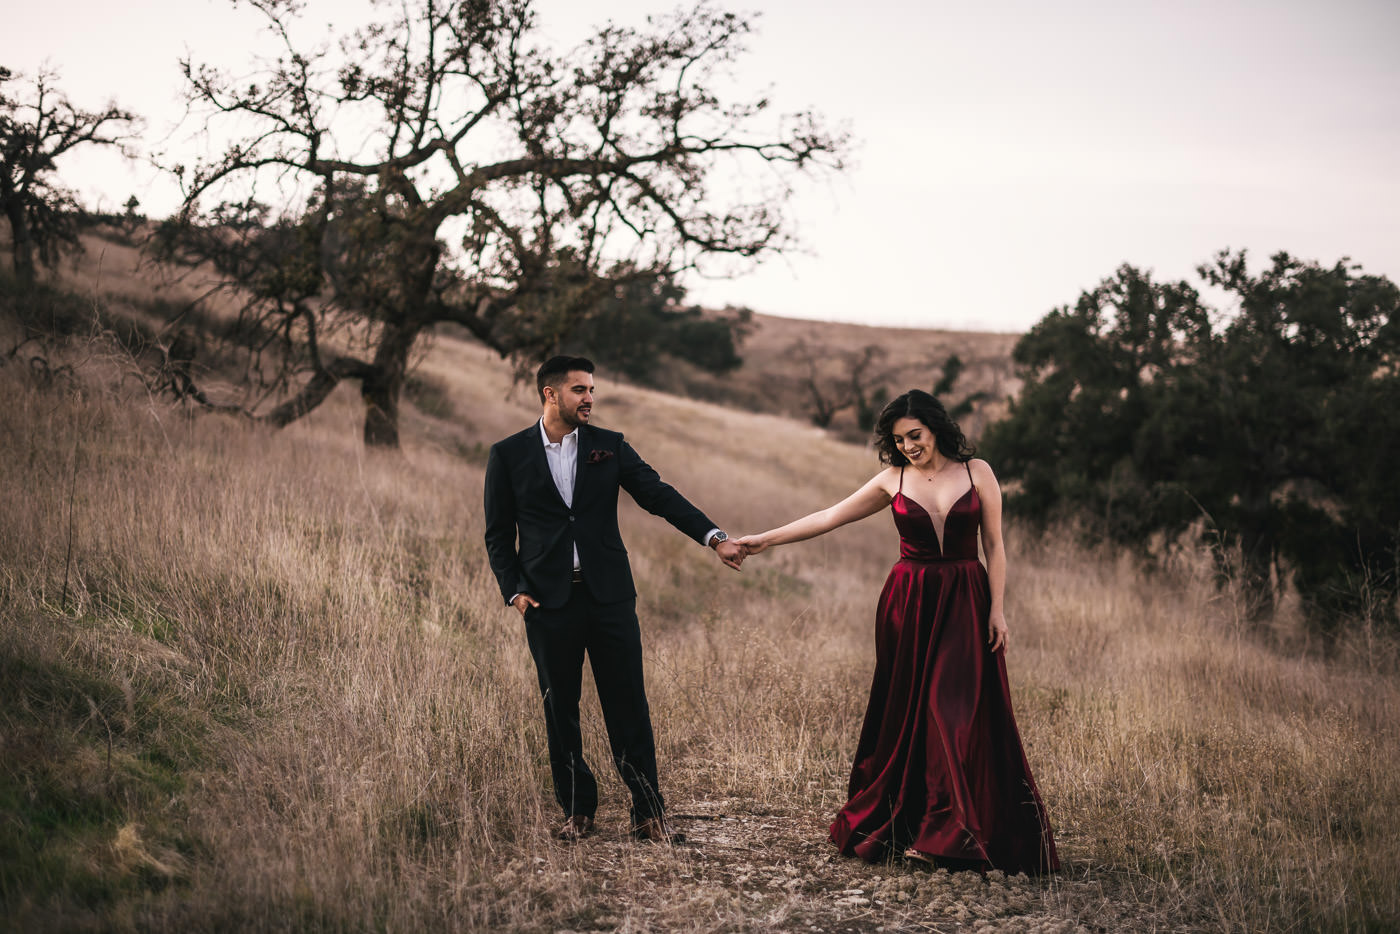 Stylish formal has a ridiculously romantic enagement session in Malibu California.